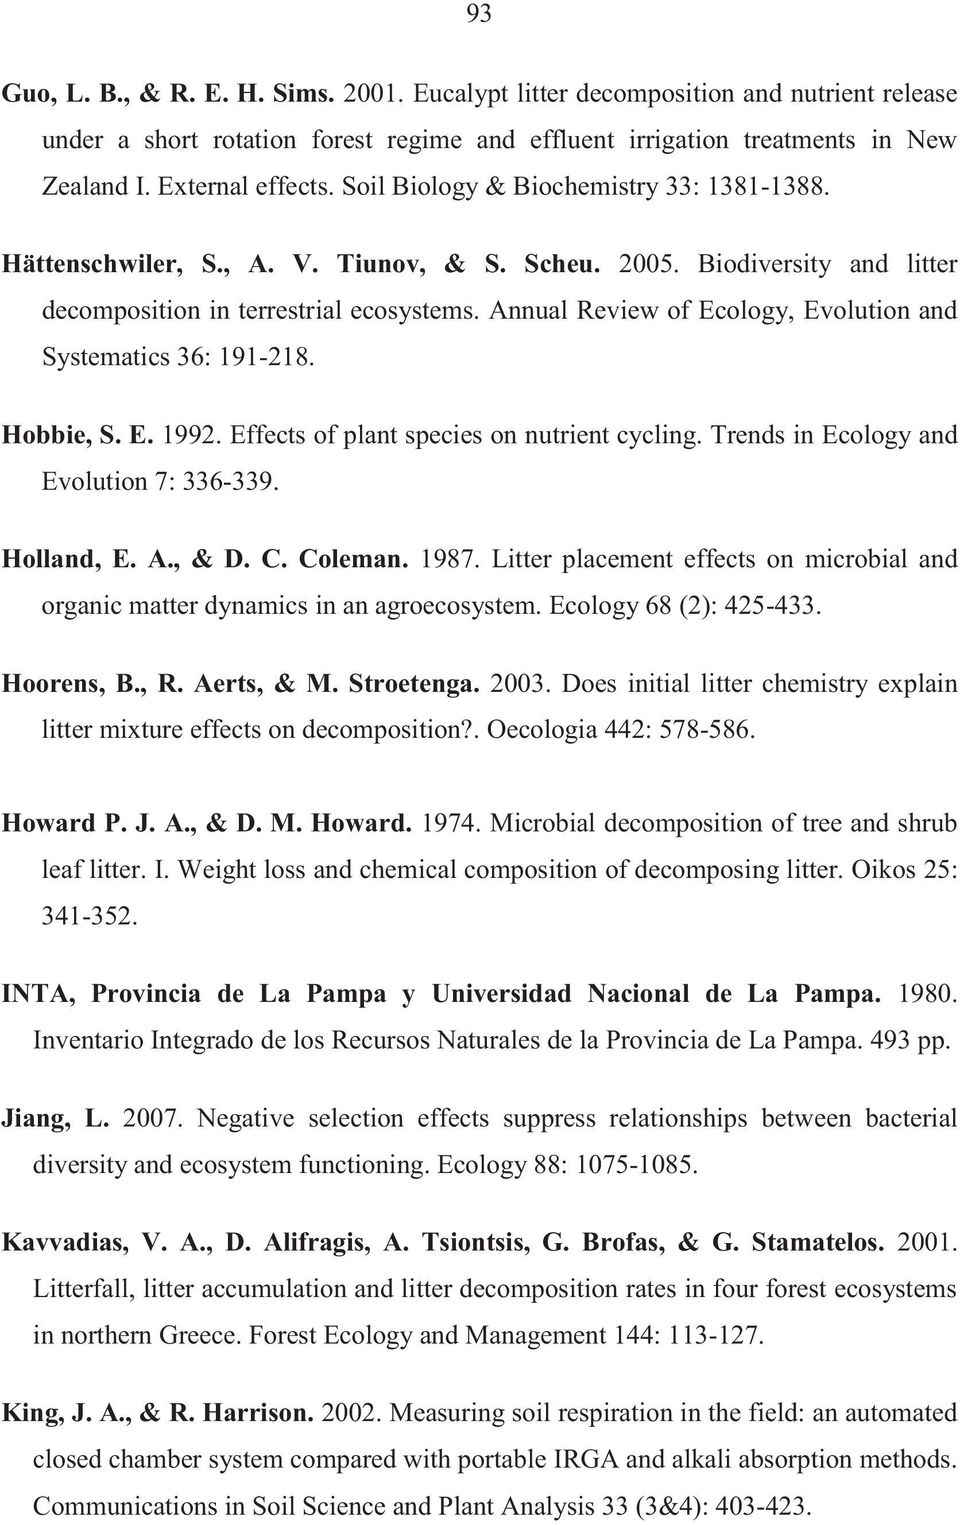 Annual Review of Ecology, Evolution and Systematics 36: 191-218. Hobbie, S. E. 1992. Effects of plant species on nutrient cycling. Trends in Ecology and Evolution 7: 336-339. Holland, E. A., & D. C.